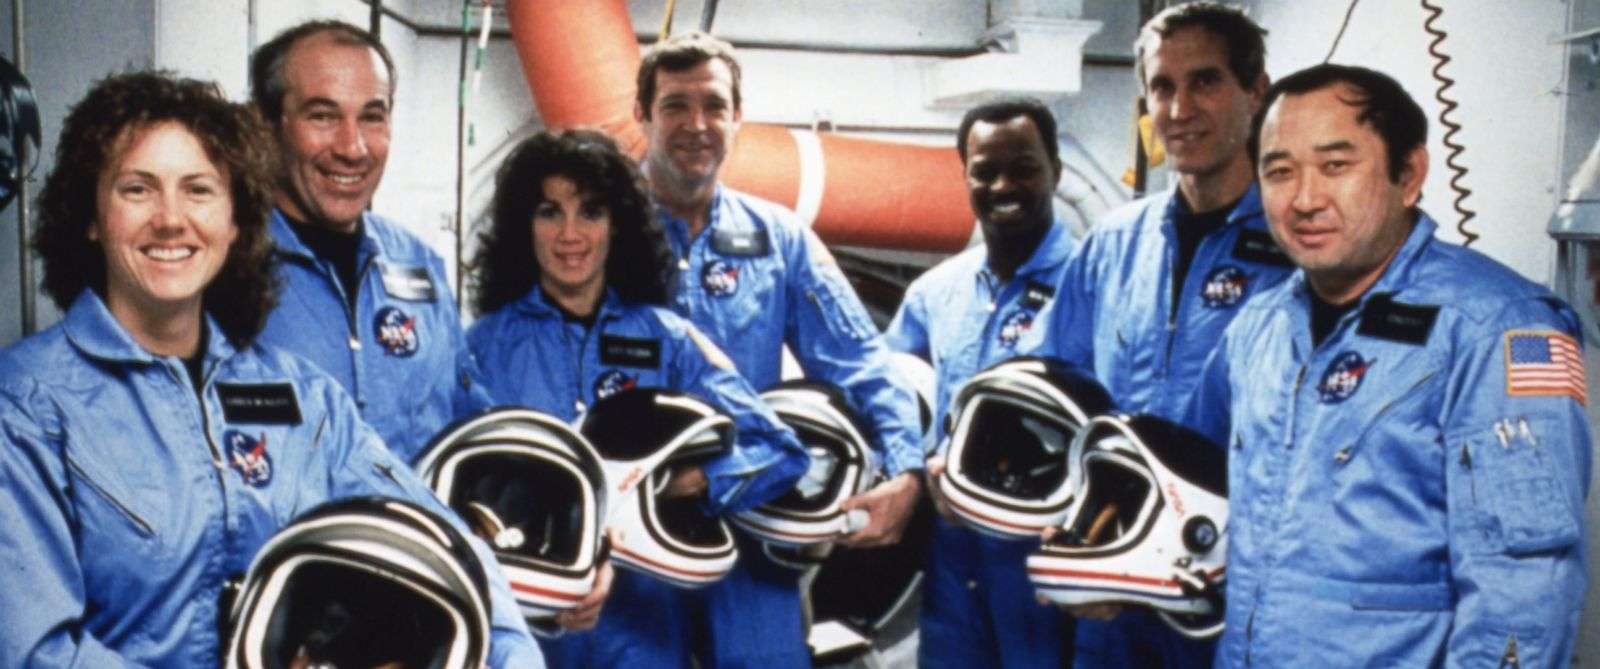 space shuttle challenger crew - photo #17